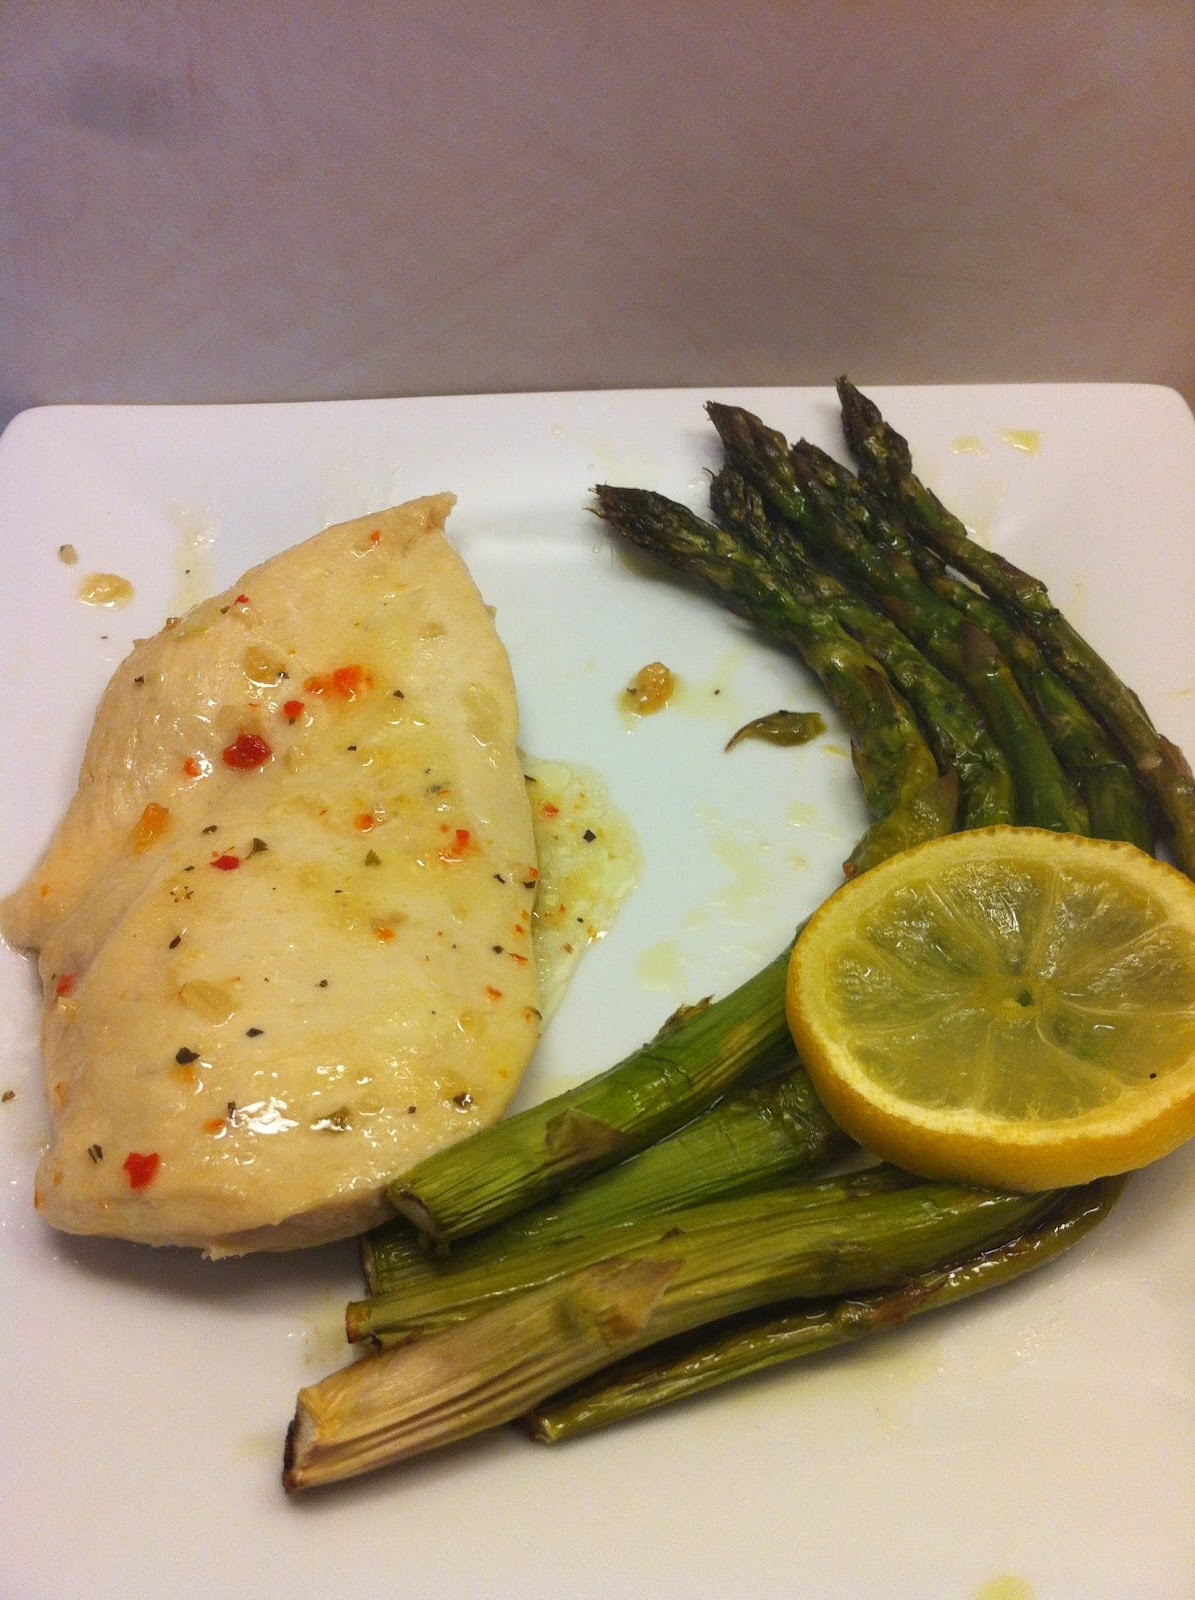 for dinner eat chicken and asparagus or broccoli.  instead of using salt use ms.s dash seasonings its a lot healthier